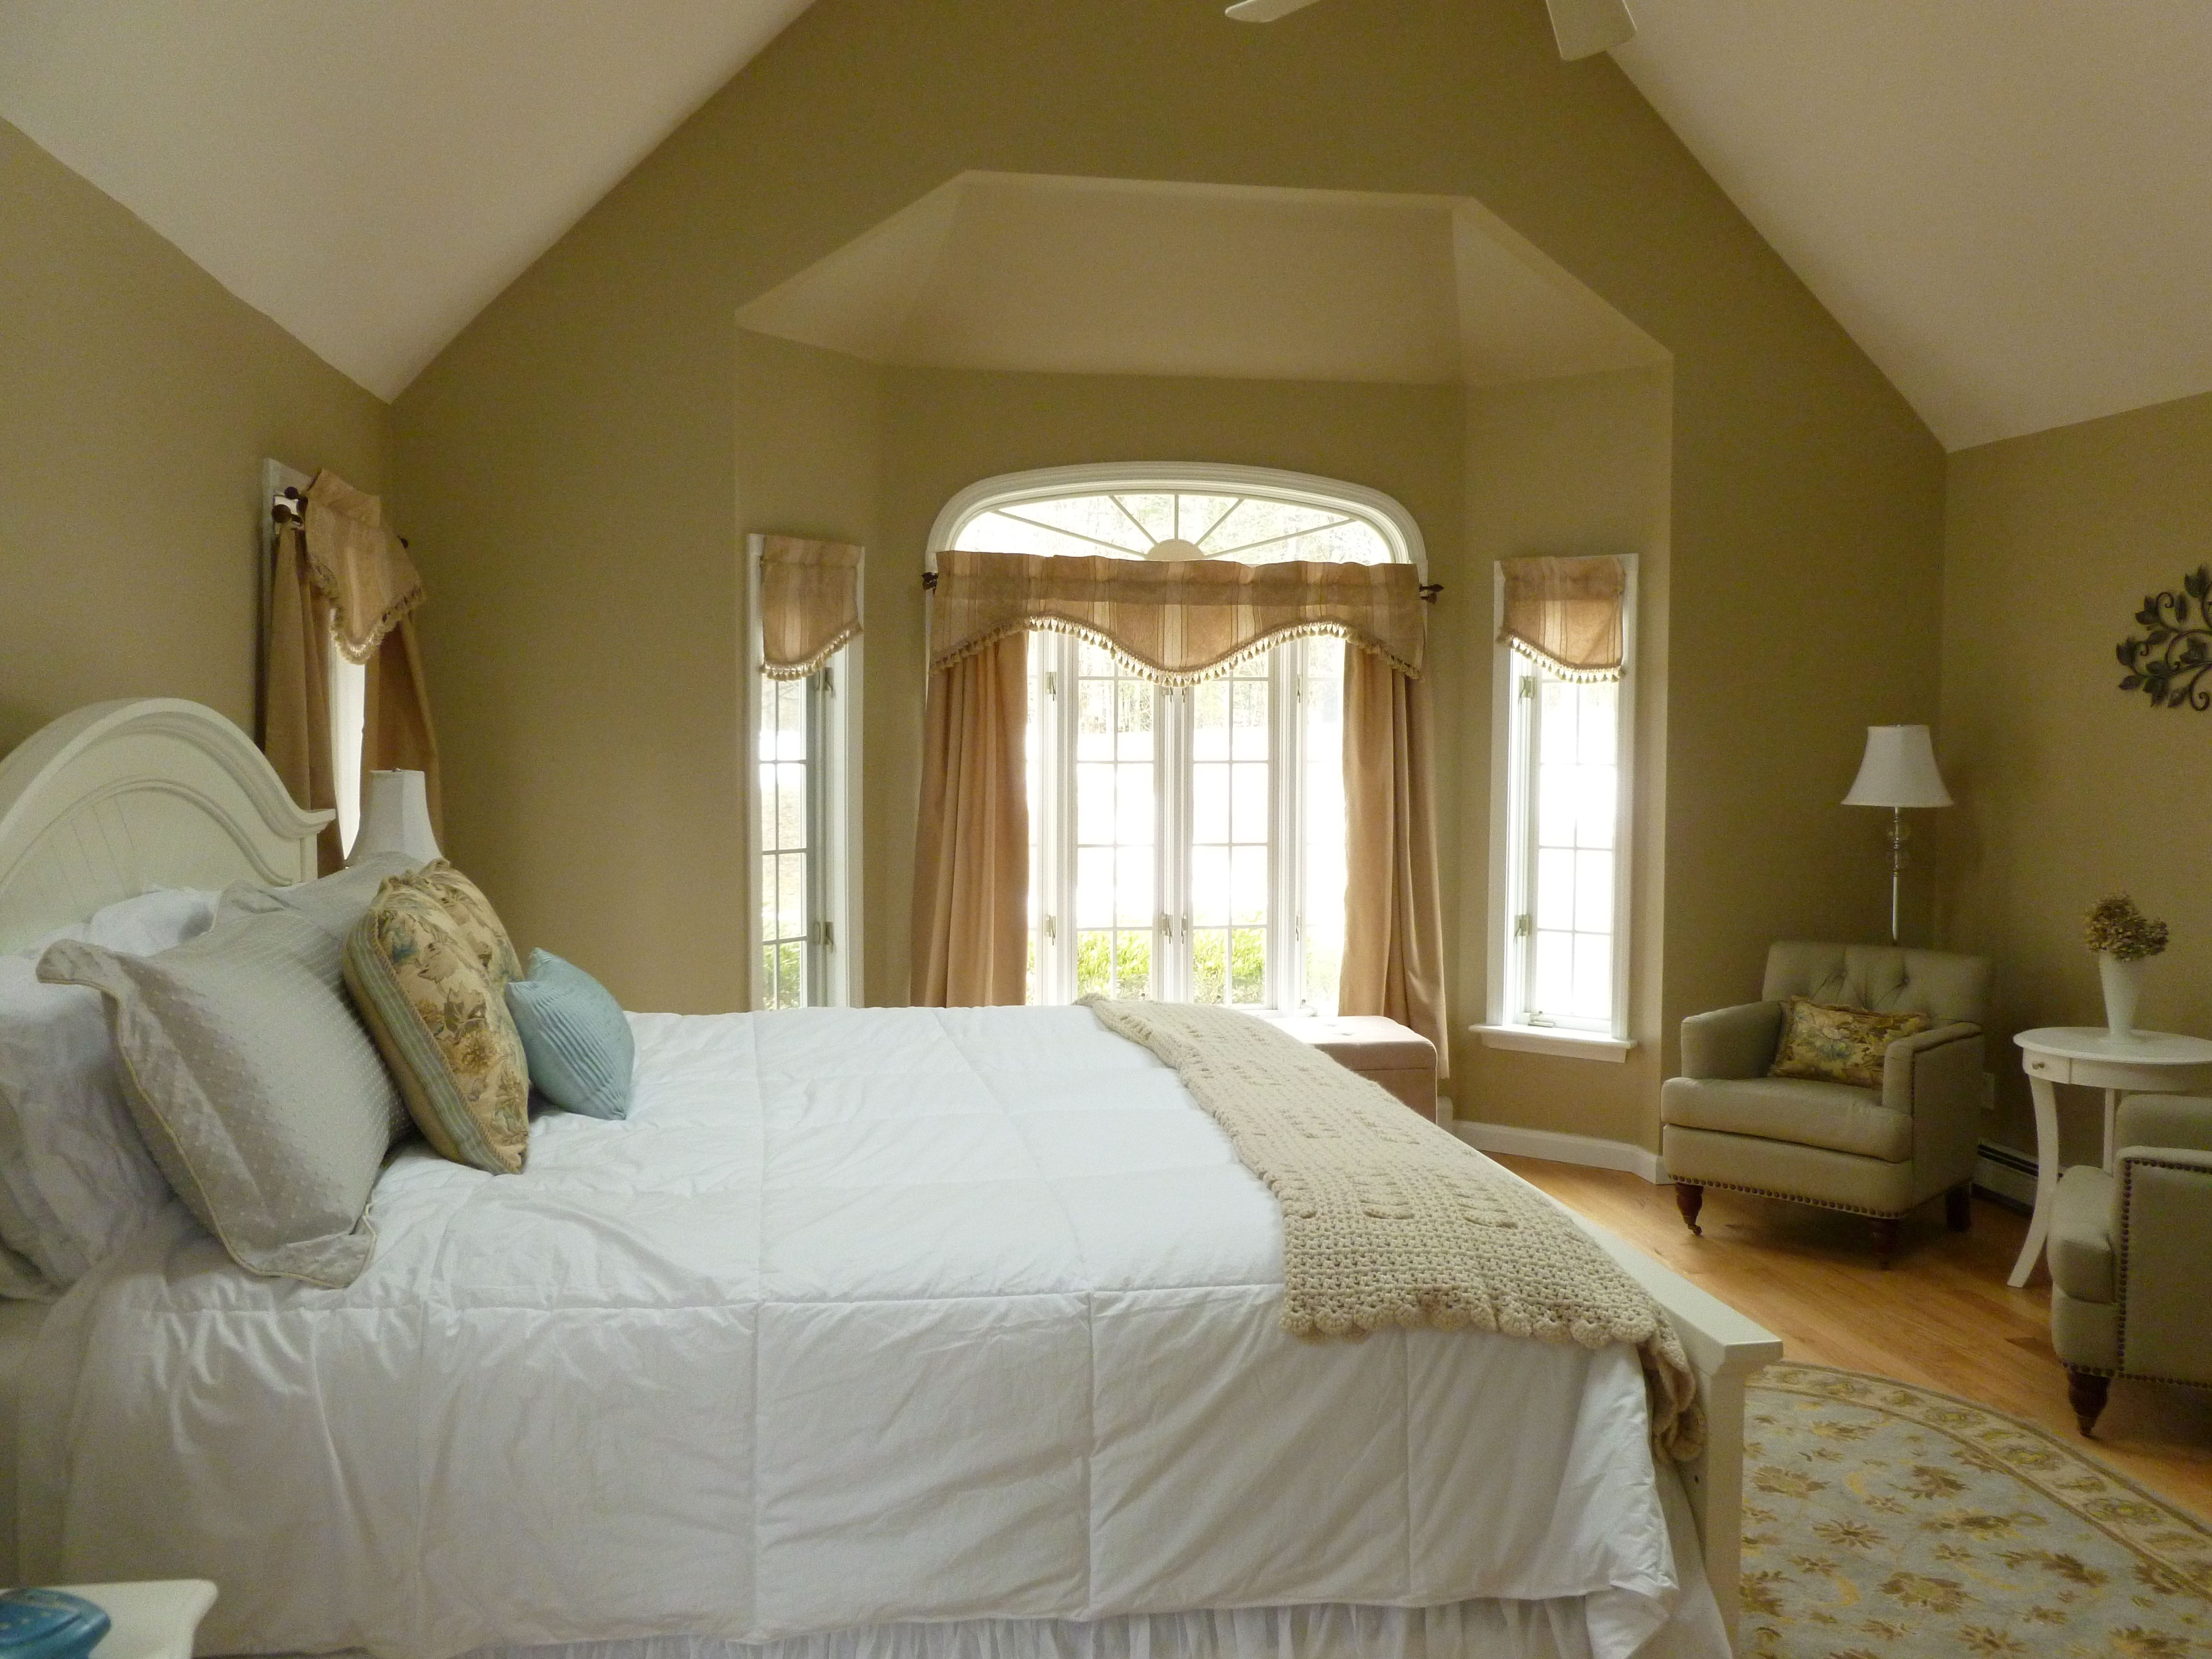 Paris Blue And Beige Change Of Accent Pillows Can Give